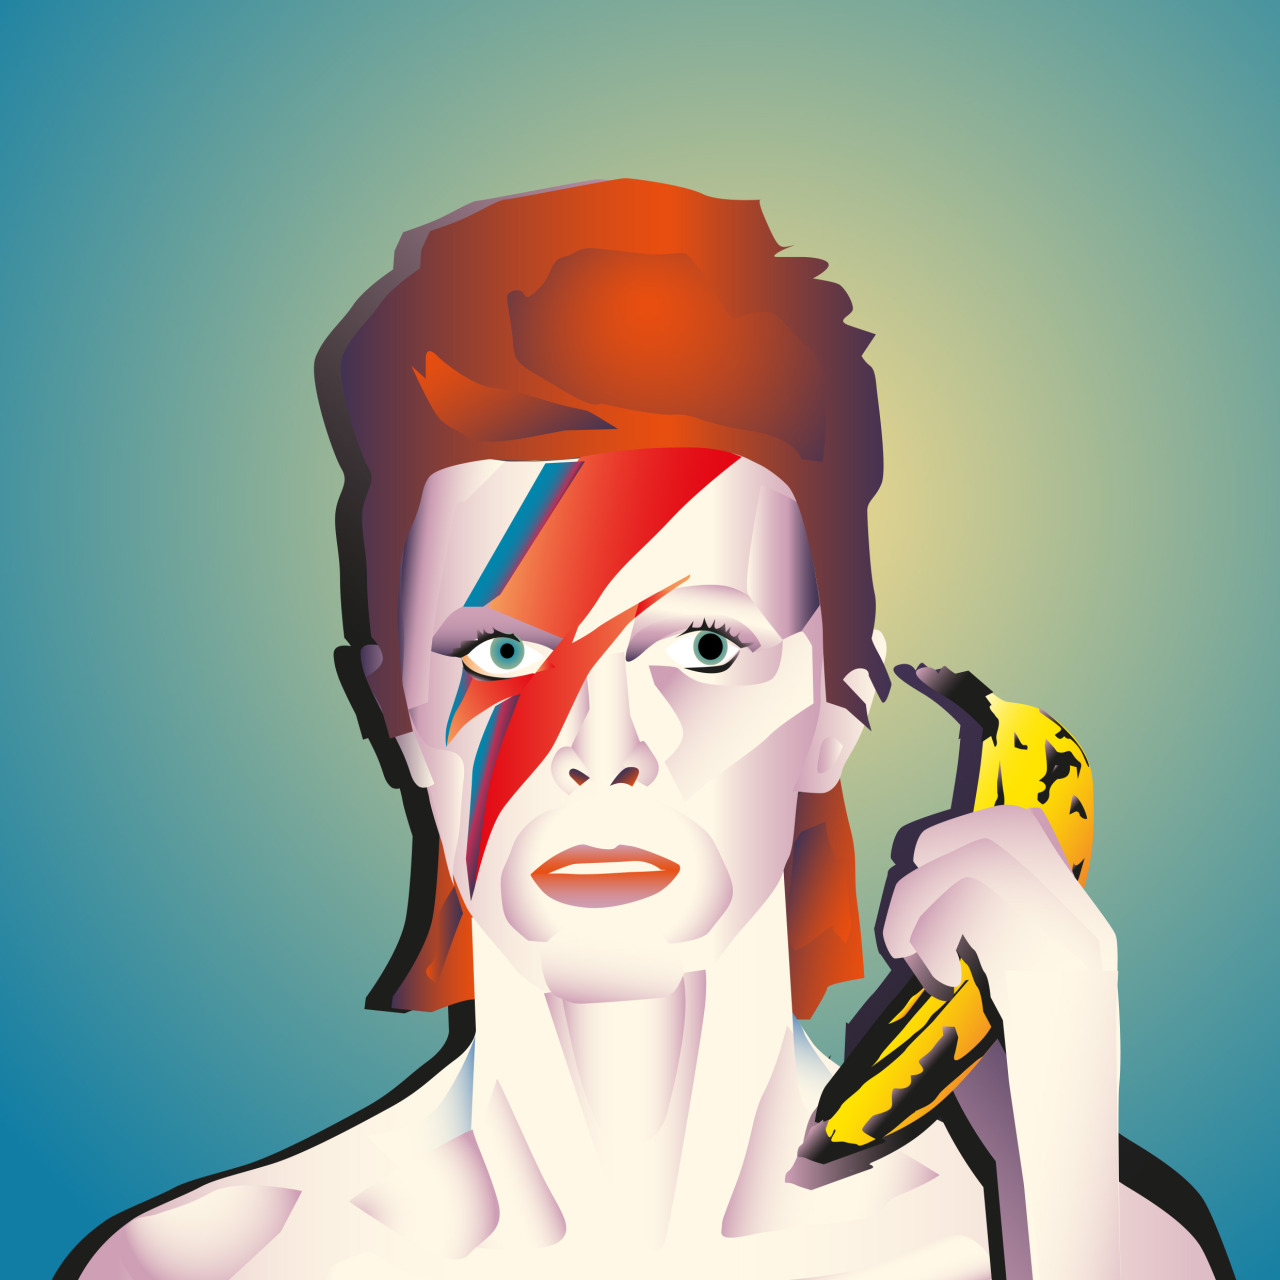 David Banana Bowie. Illustration by Benjamin Cullimore